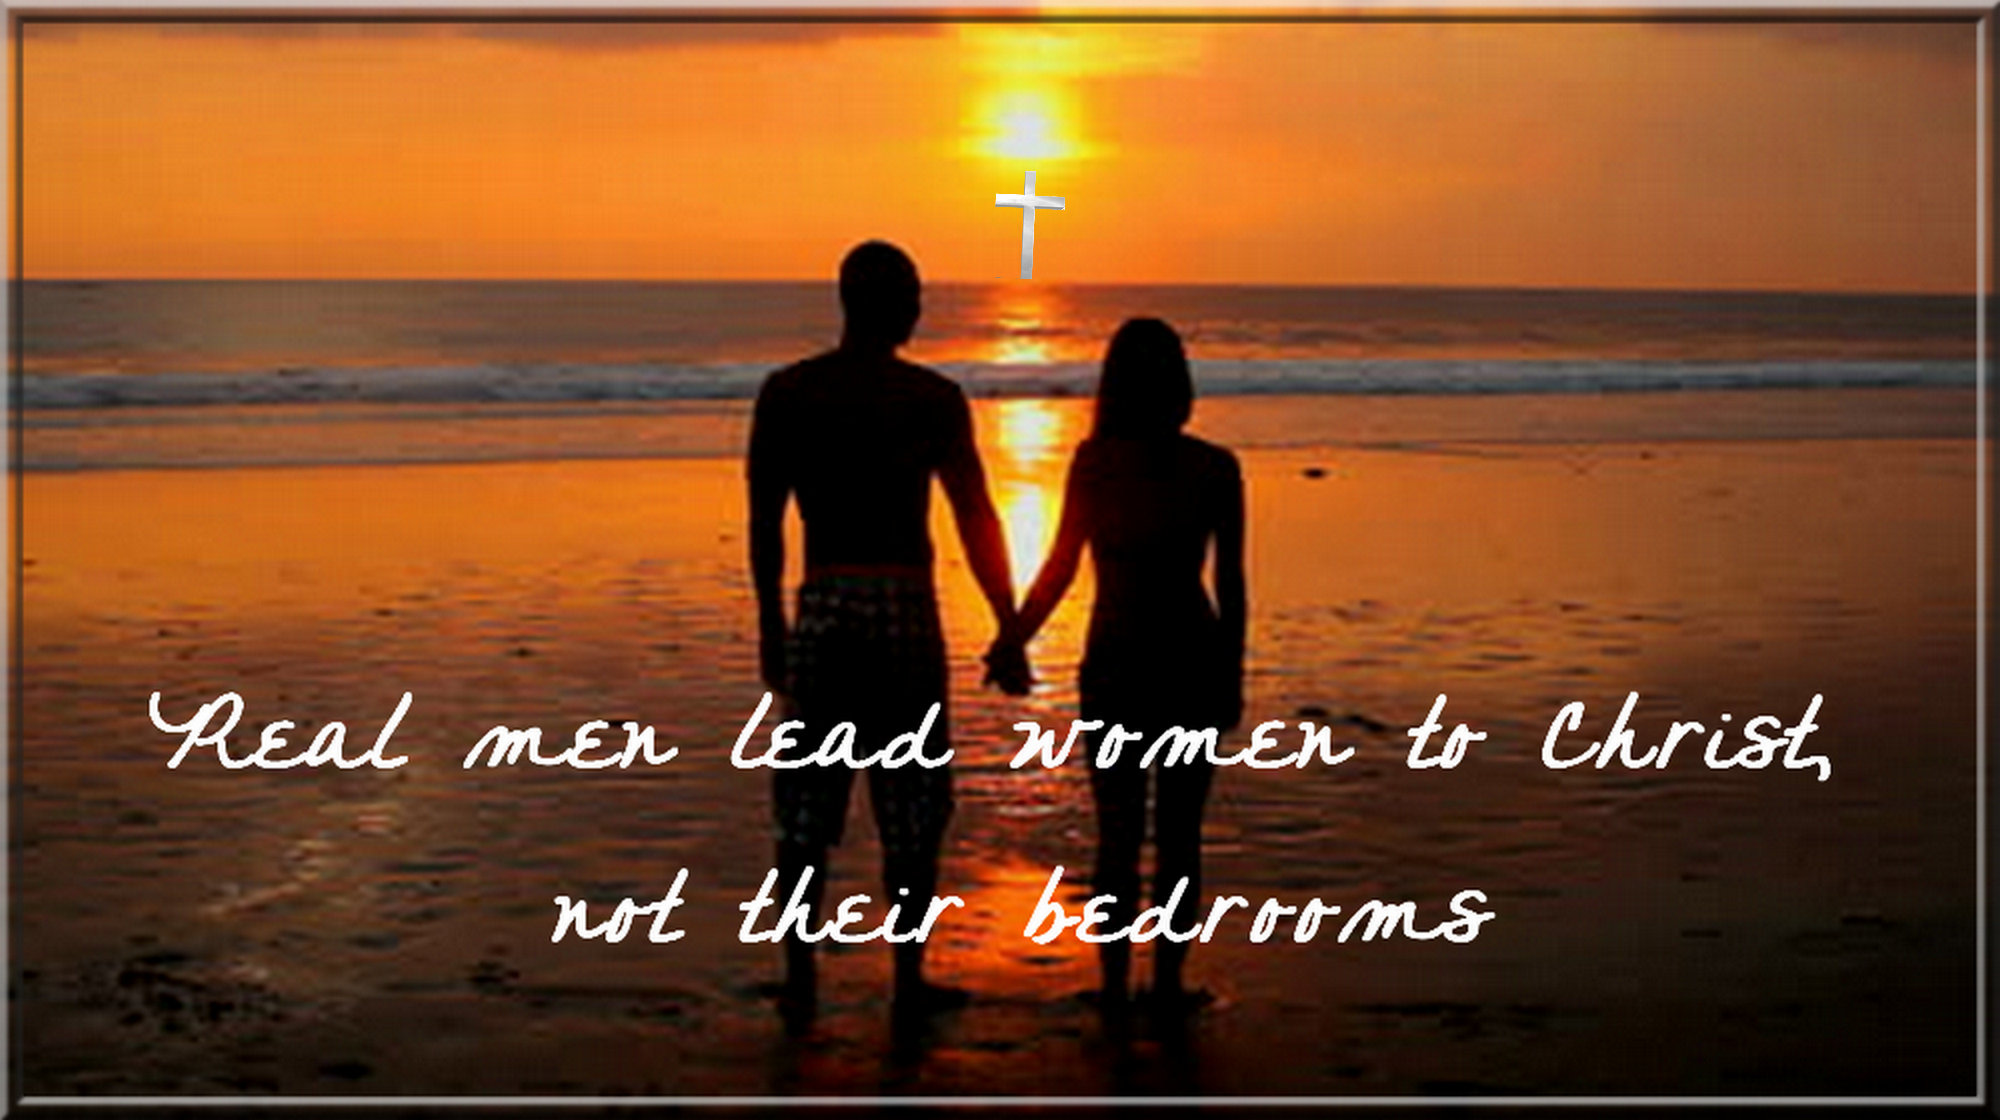 Real men lead women to Christ